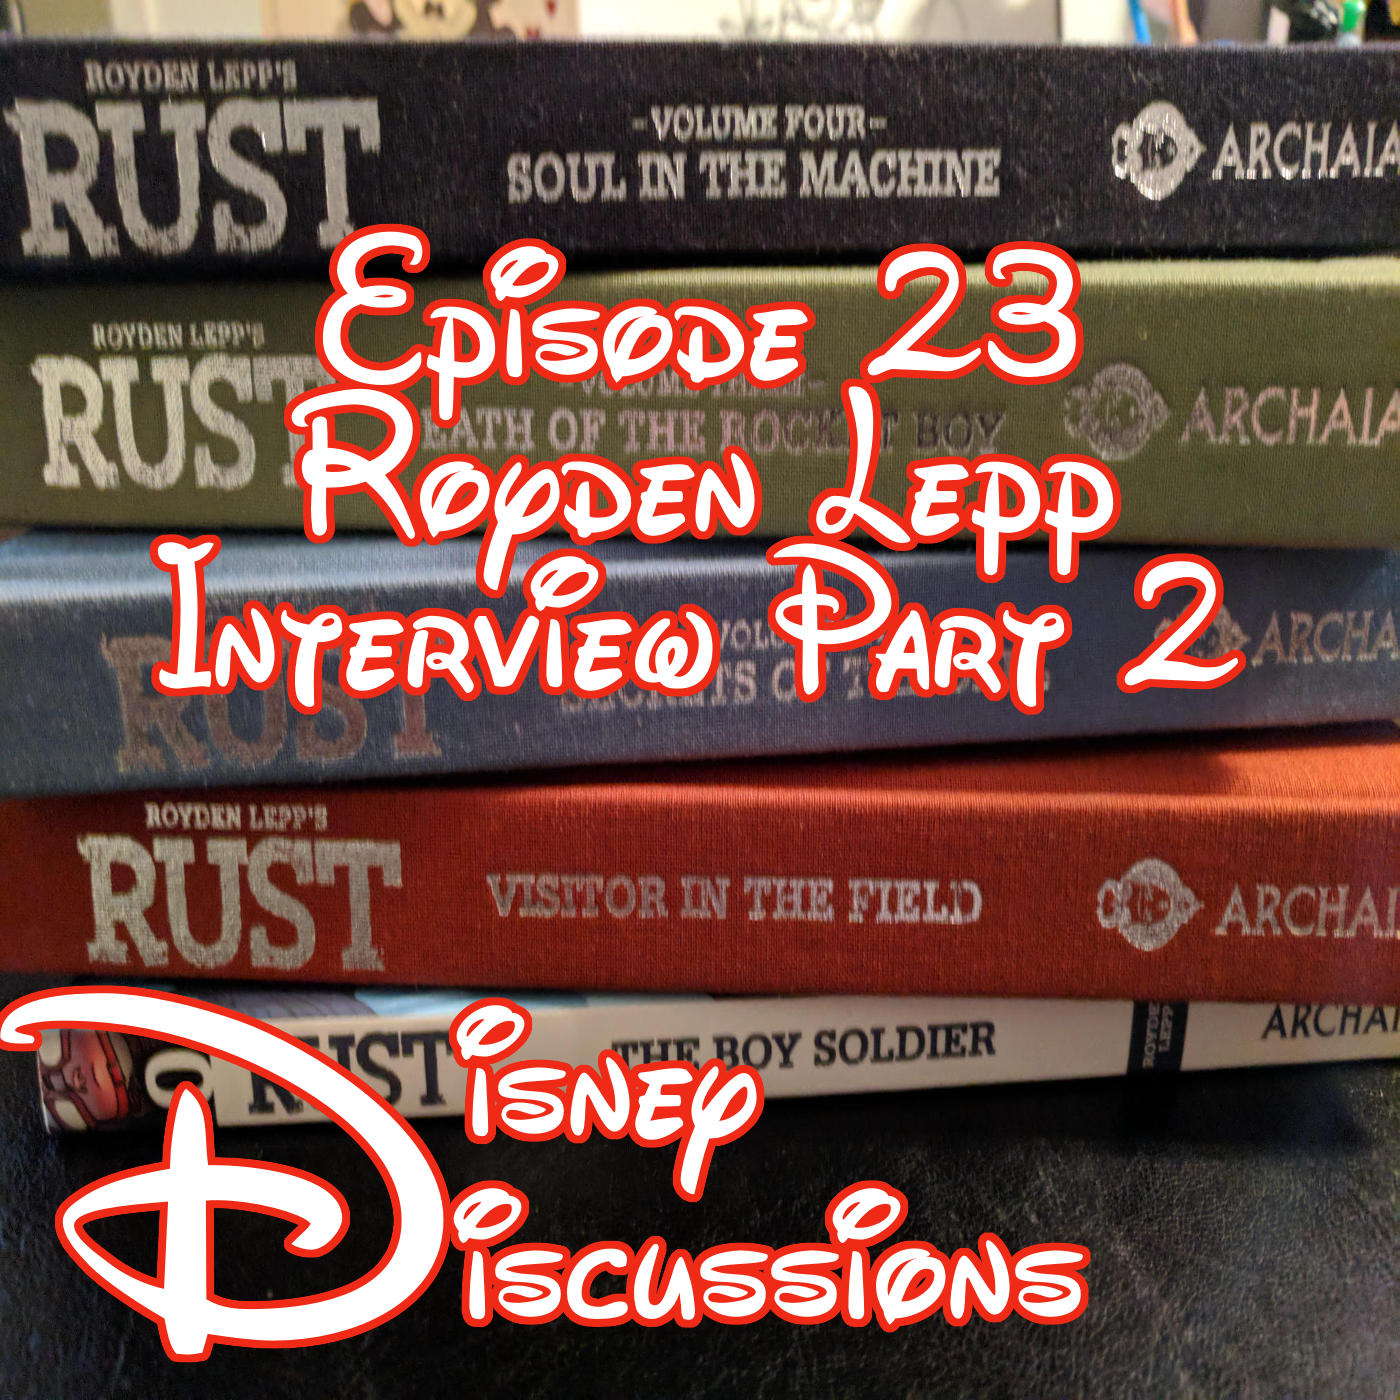 Part 2 of Royden Lepp creator of Rust Interview , Avengers Infinity War Trailer and more! - Disney Discussions